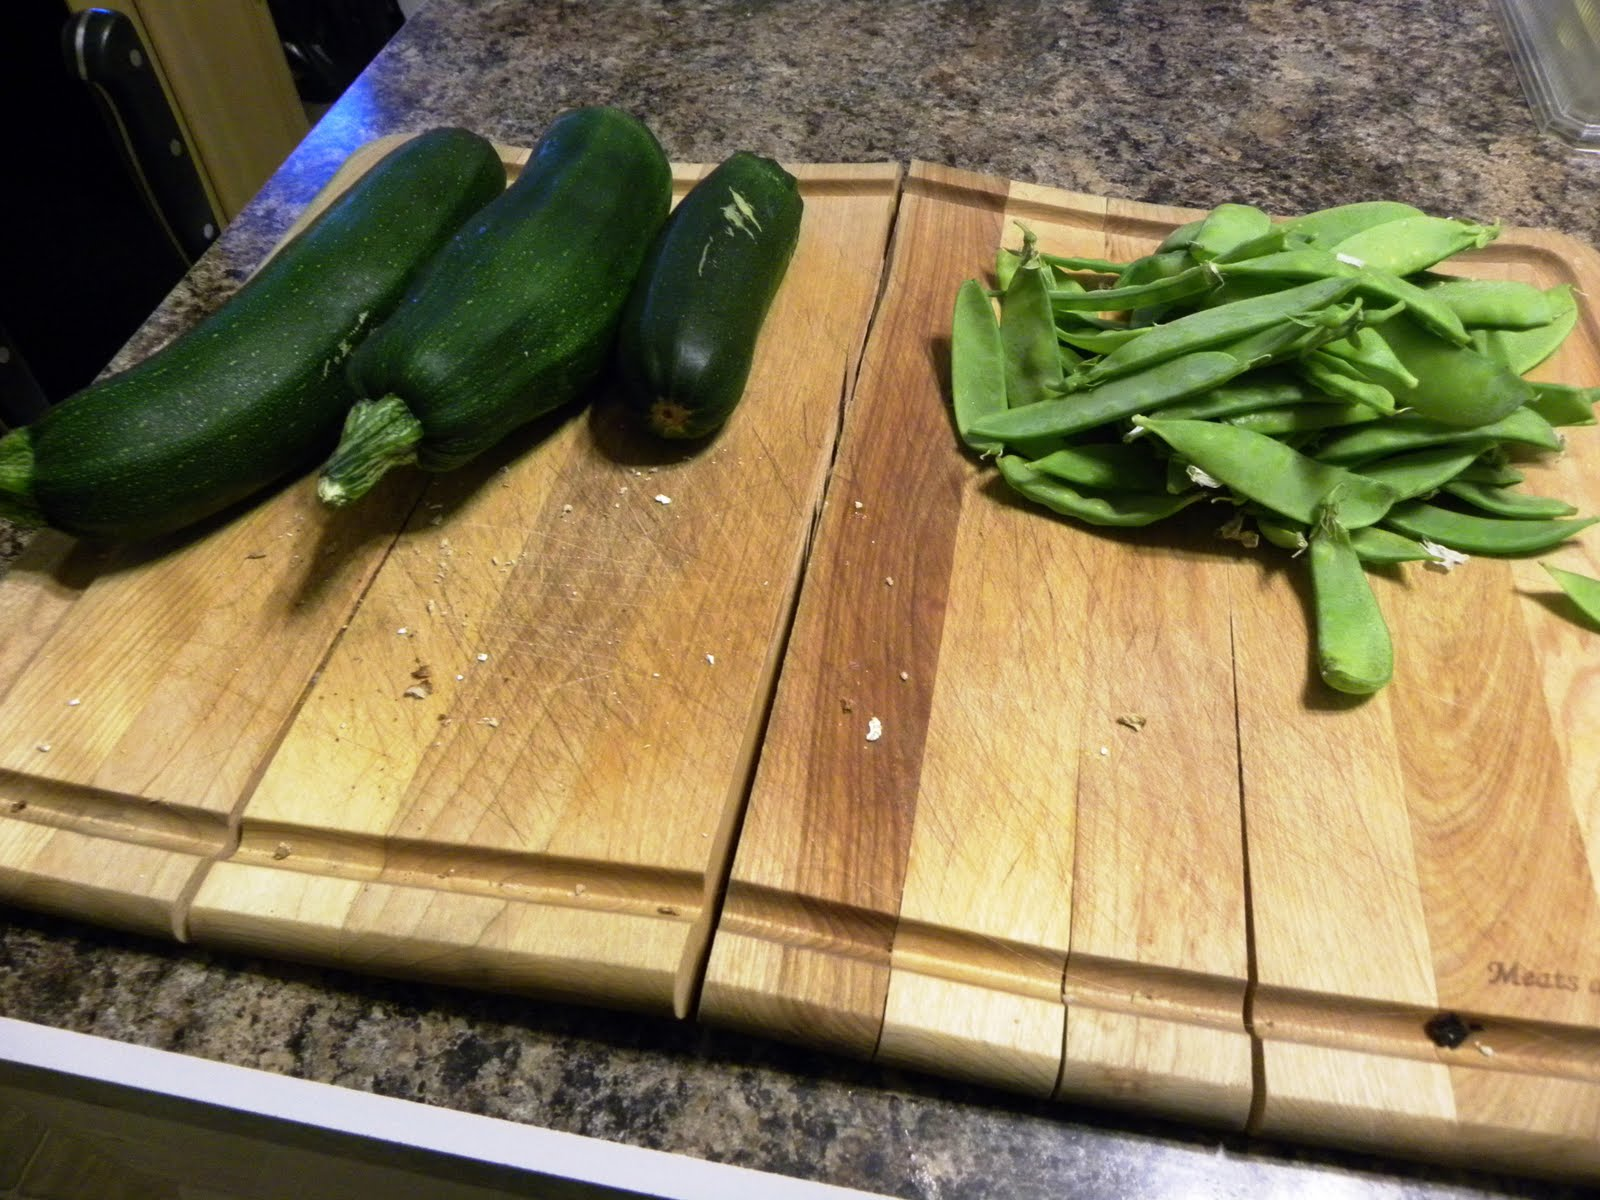 This past weekend, when I set about to freeze some zucchini & snow peas, I started cleaning ends and such off of what I had and Nick checked the garden for ...